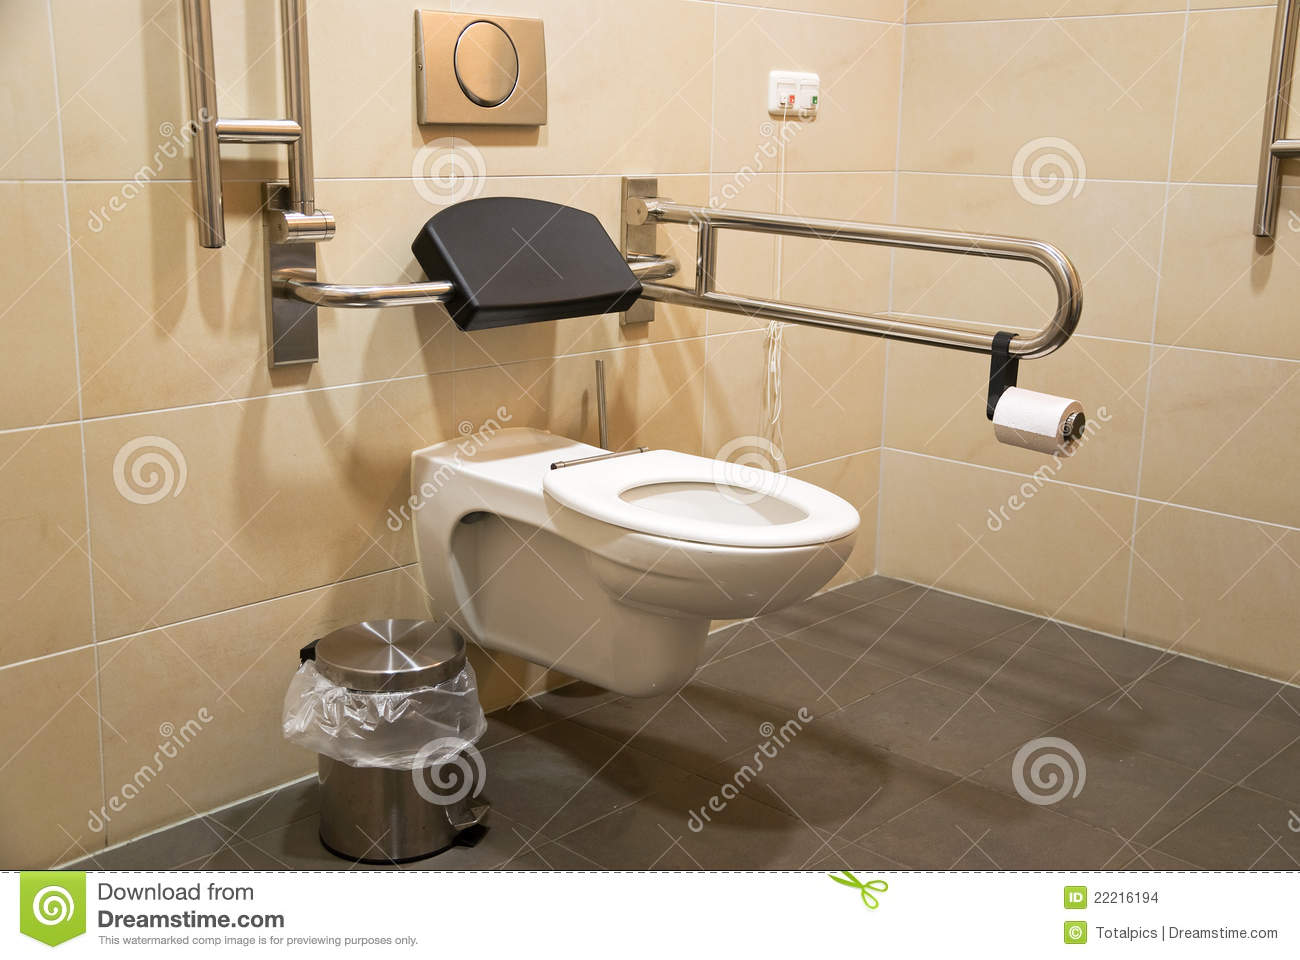 Toilet for disabled people stock images image 22216194 - Toilet for handicapped person ...